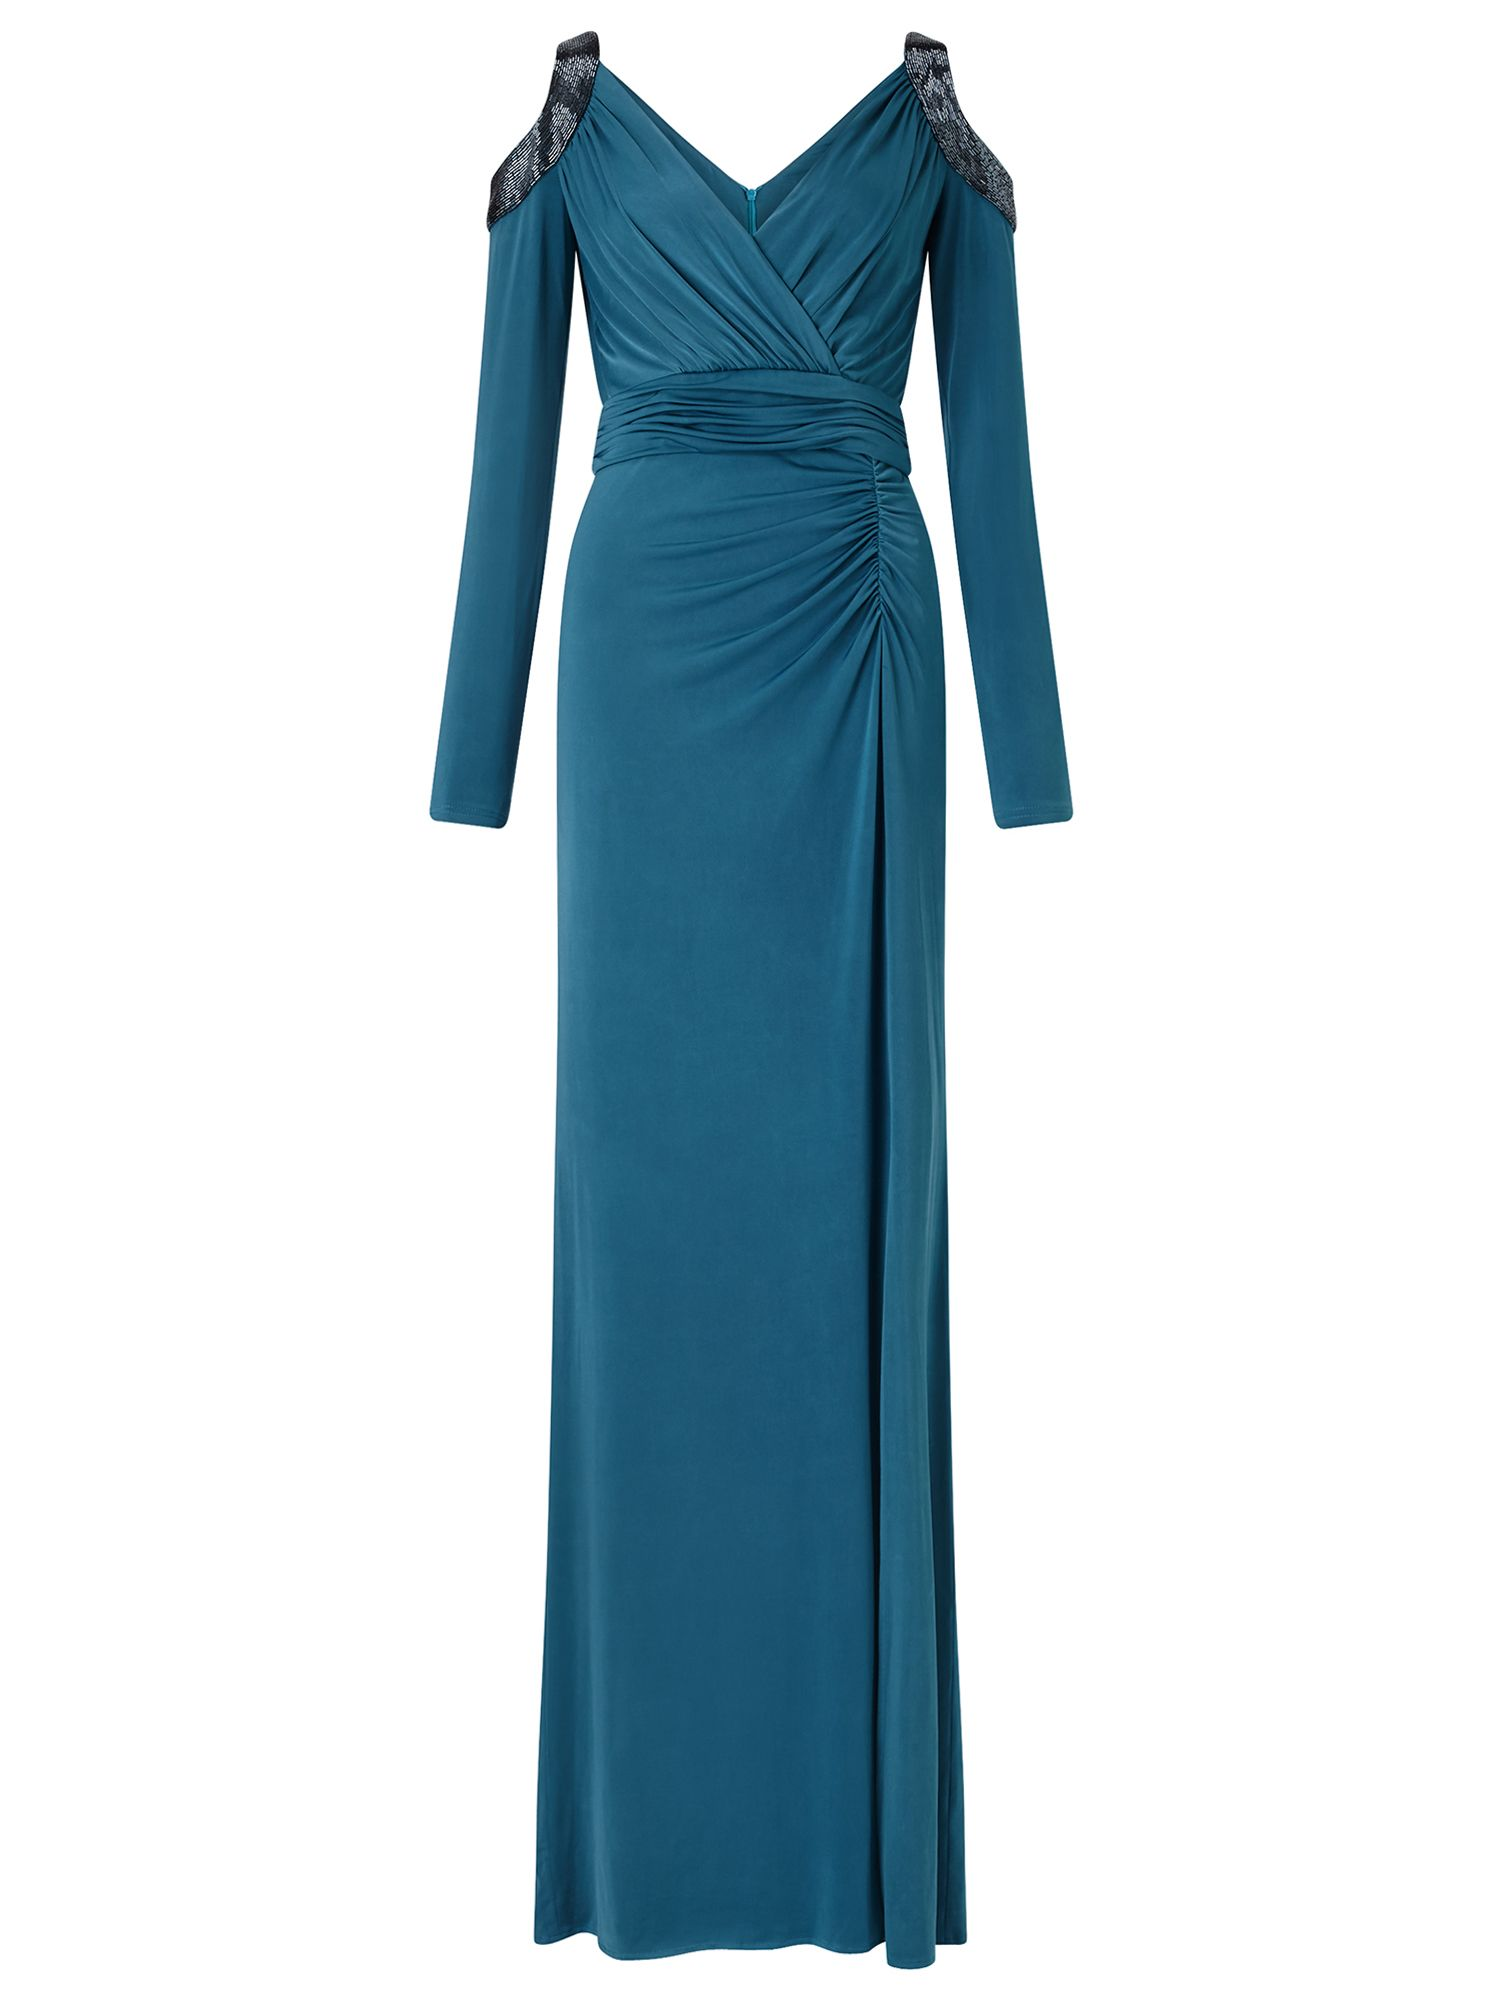 Ariella Yoko Open Shoulder Jersey Dress, Teal